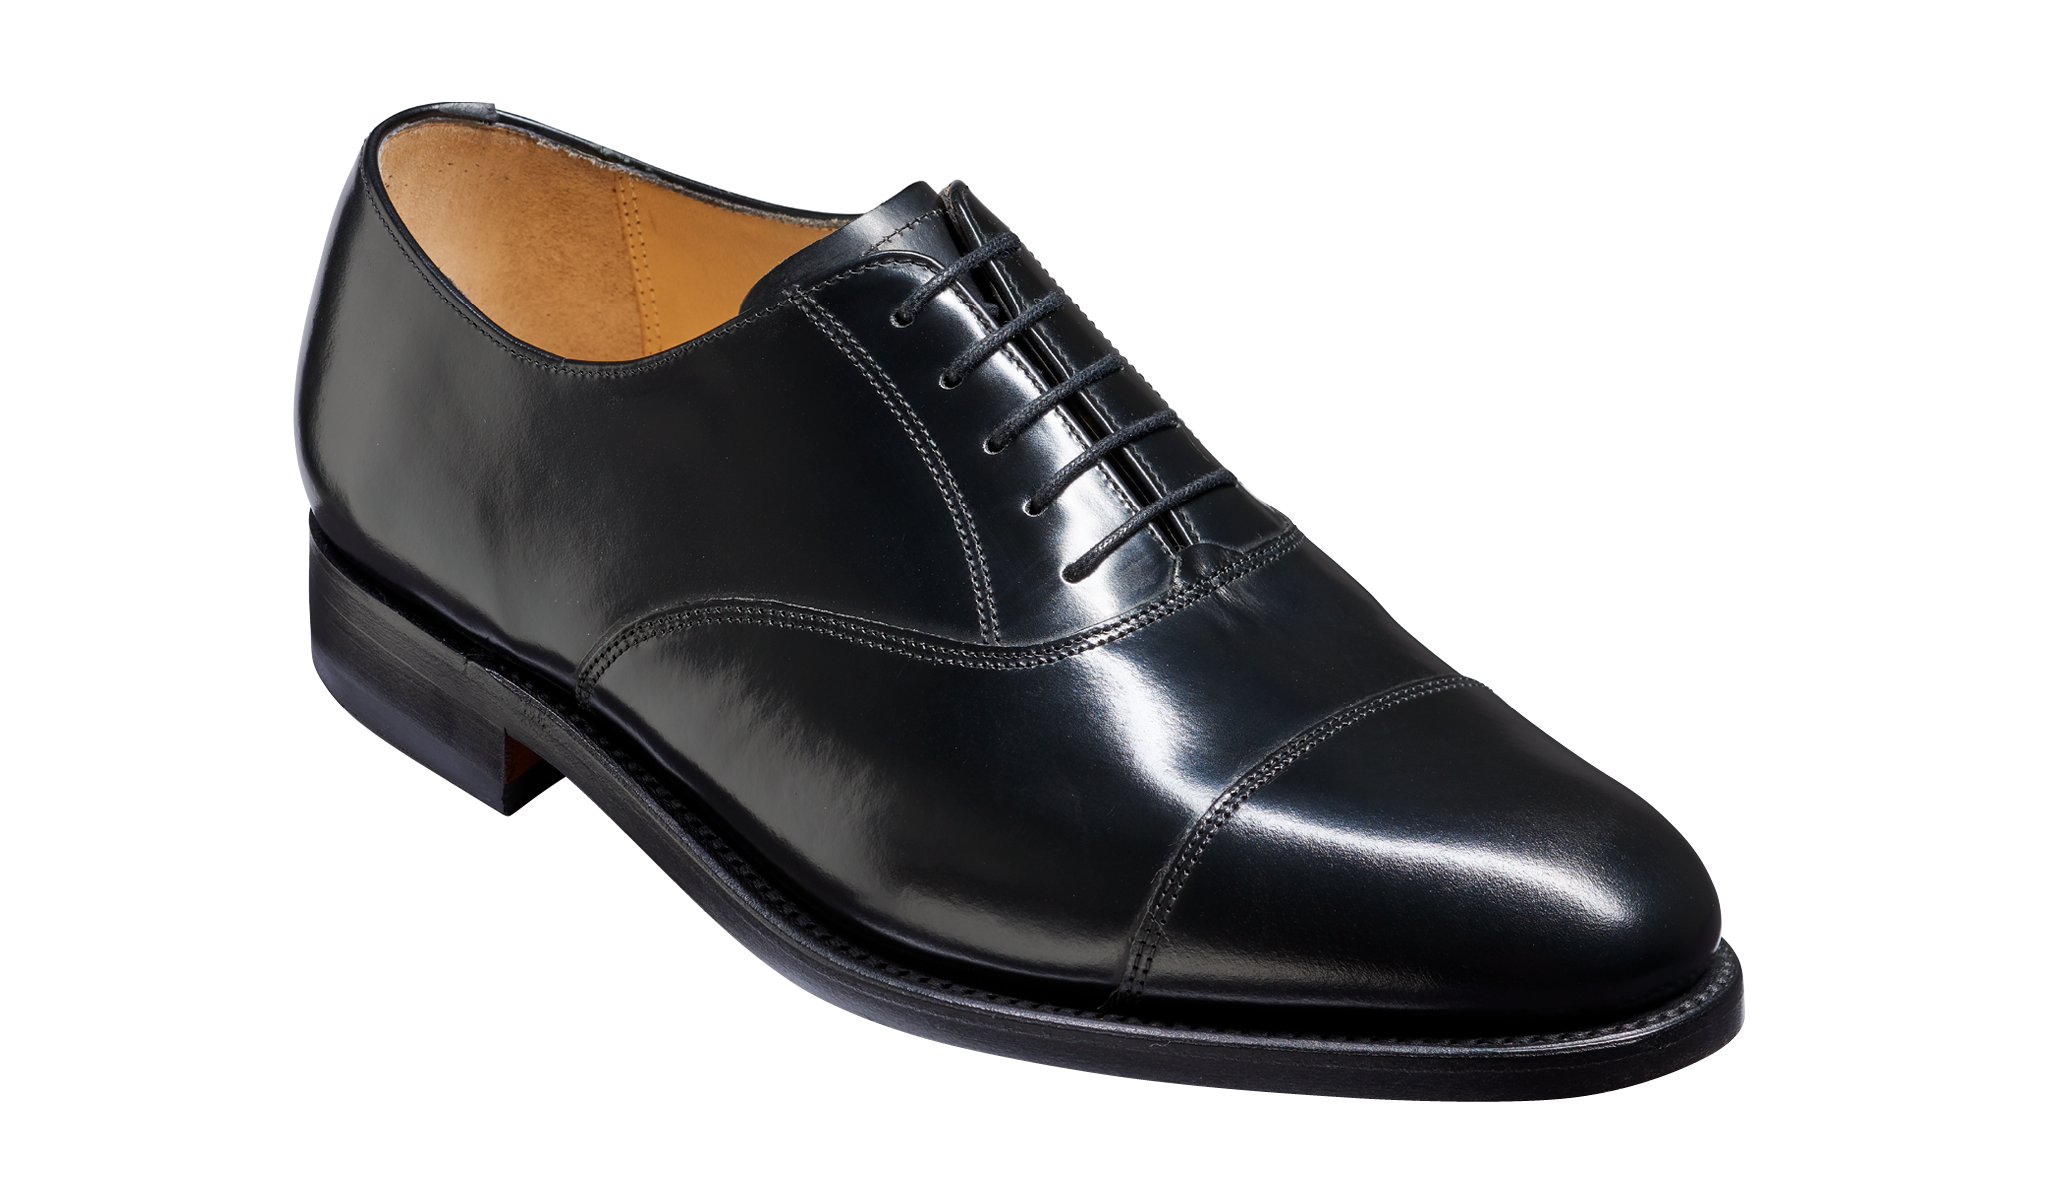 Arnold - Men's Black Leather Oxford Shoes From Barker